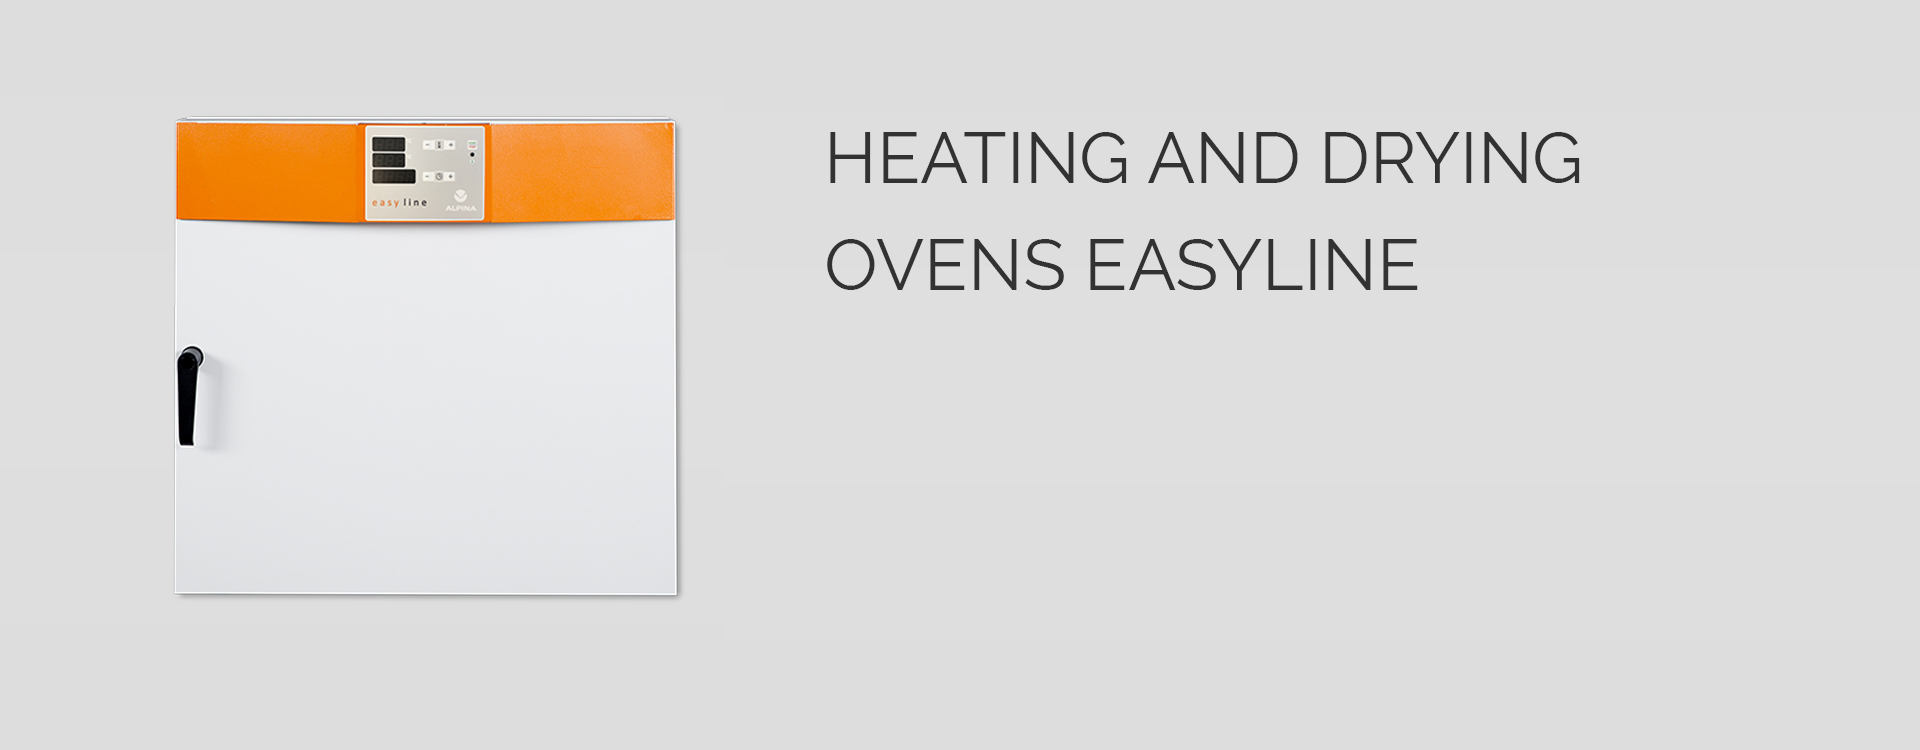 heating-and-drying-ovens-easyline